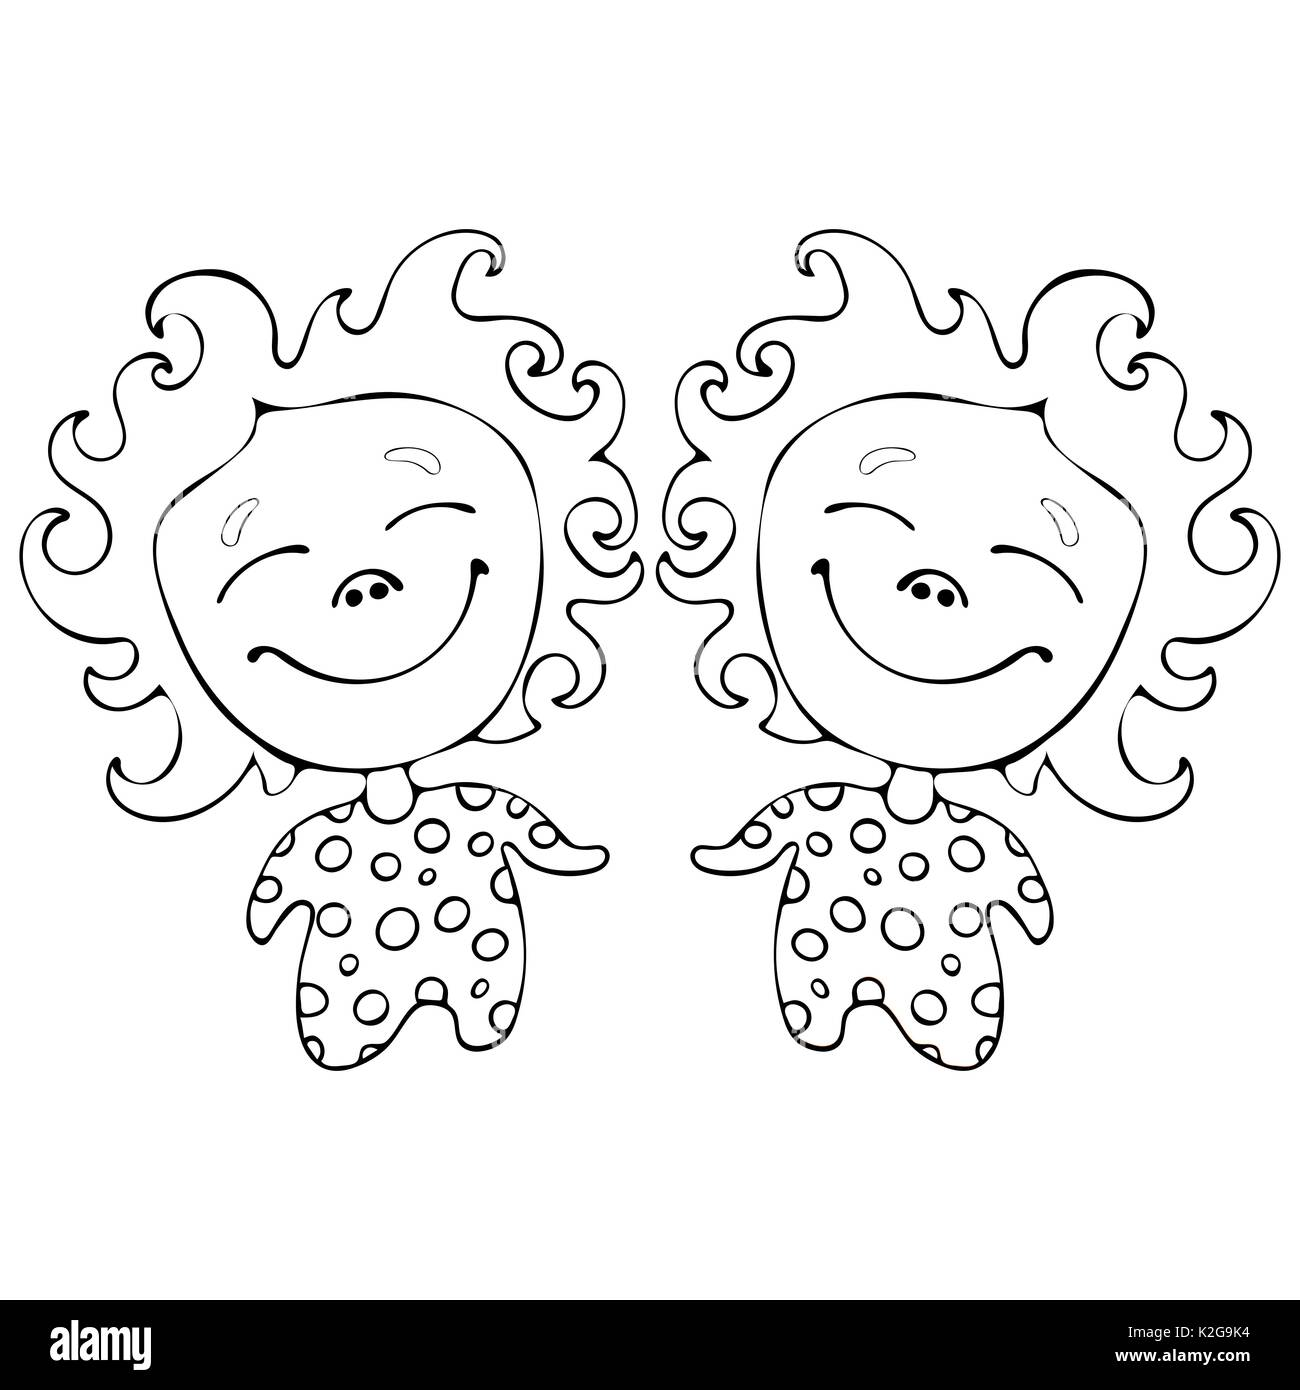 cartoon funny babes twins for coloring book isolated on white stock